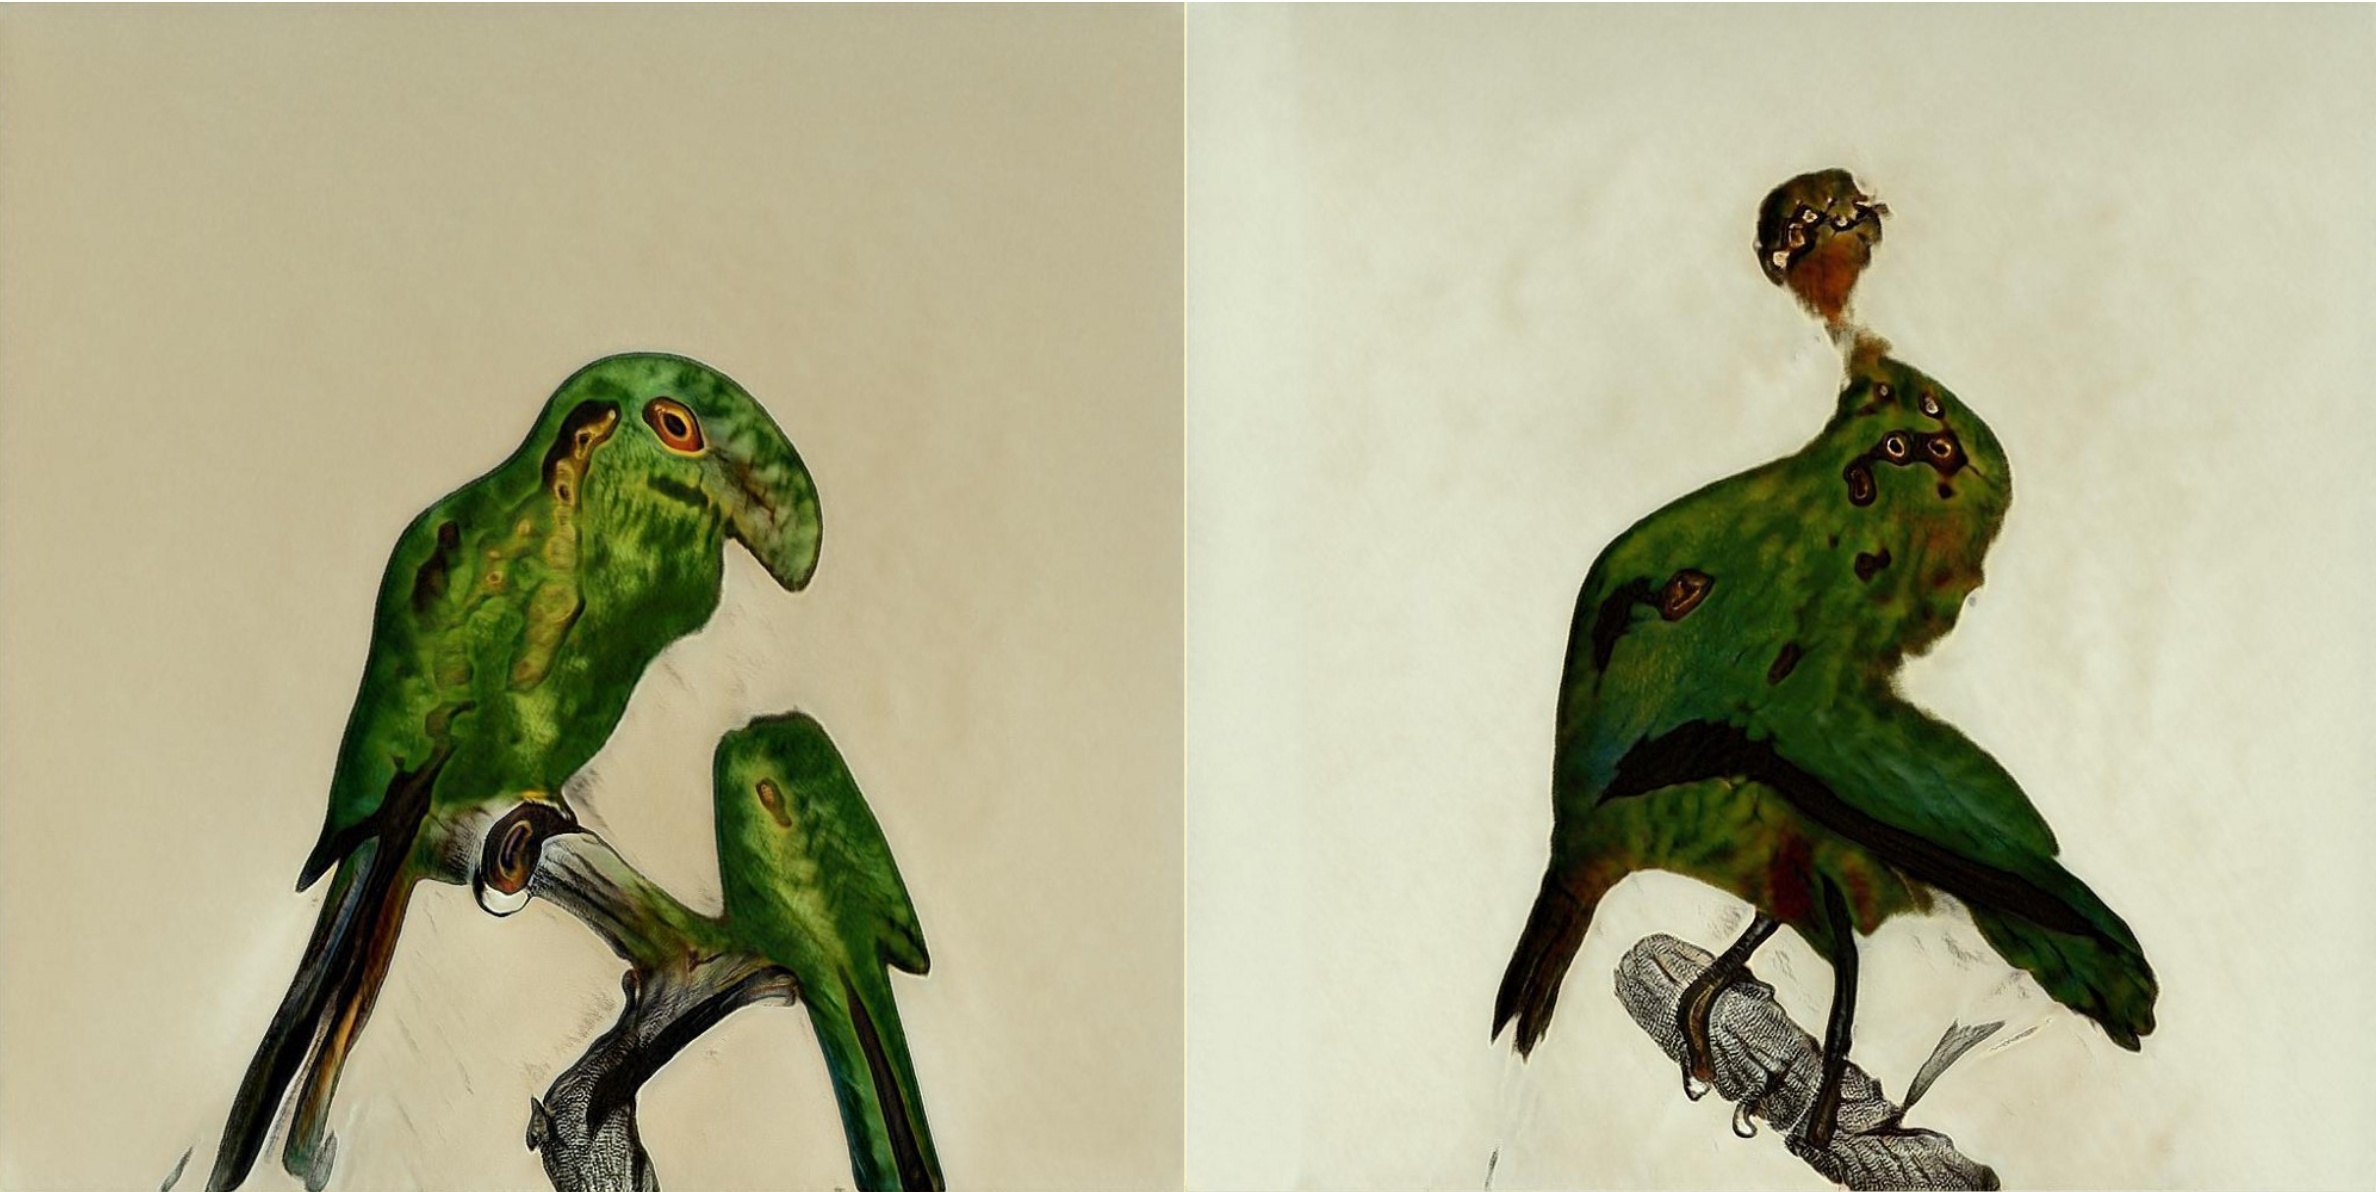 Two screenshots of images the StyleGAN has produced where the birds look a weird shape almost like they're melting. The legs and tree branches and textures of the birds look okay, but they have many eyes and their shape is all wrong.